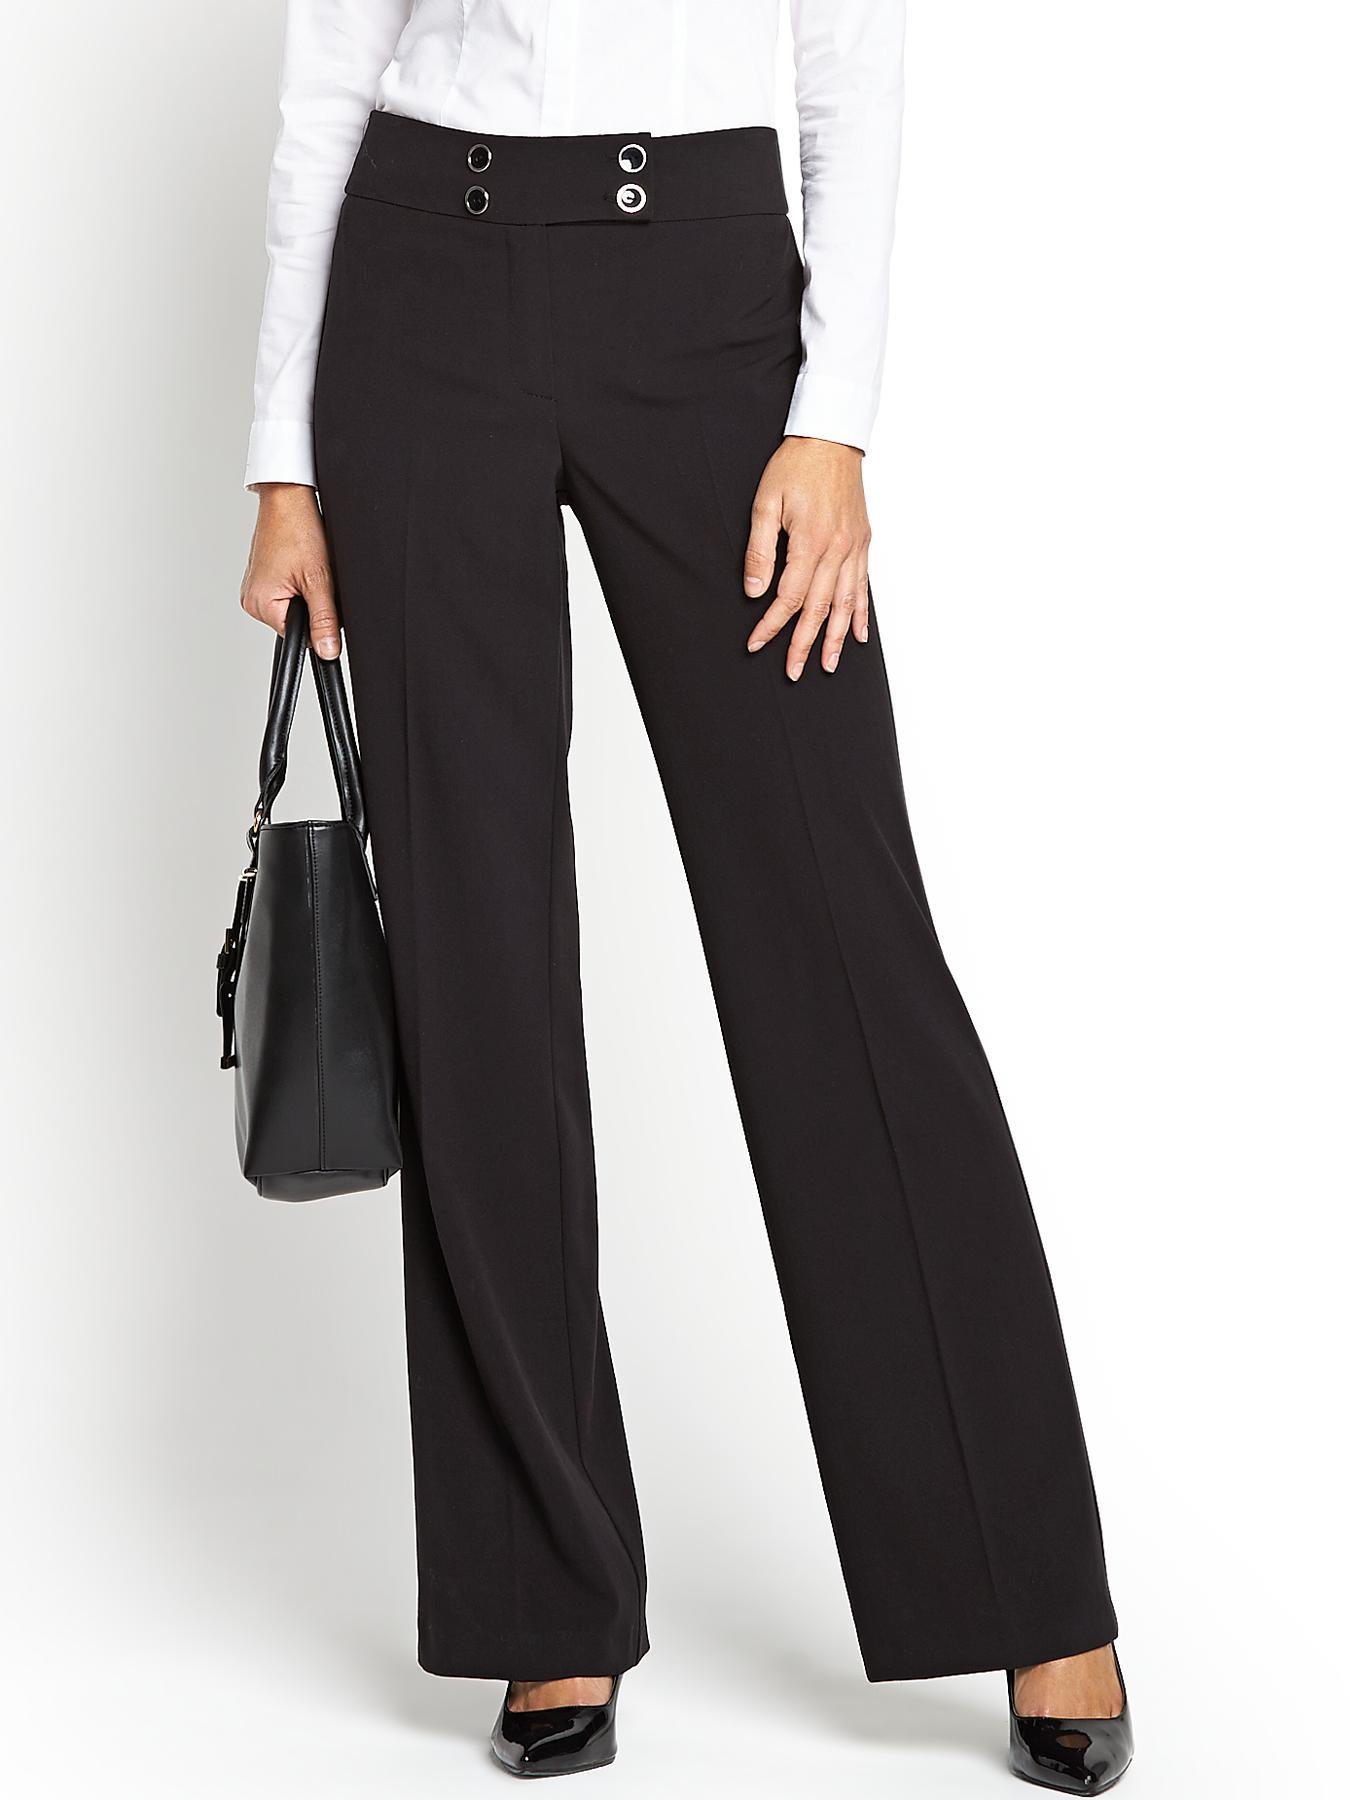 Savoir PVL Wide Leg Trousers - Black, Grey,Black